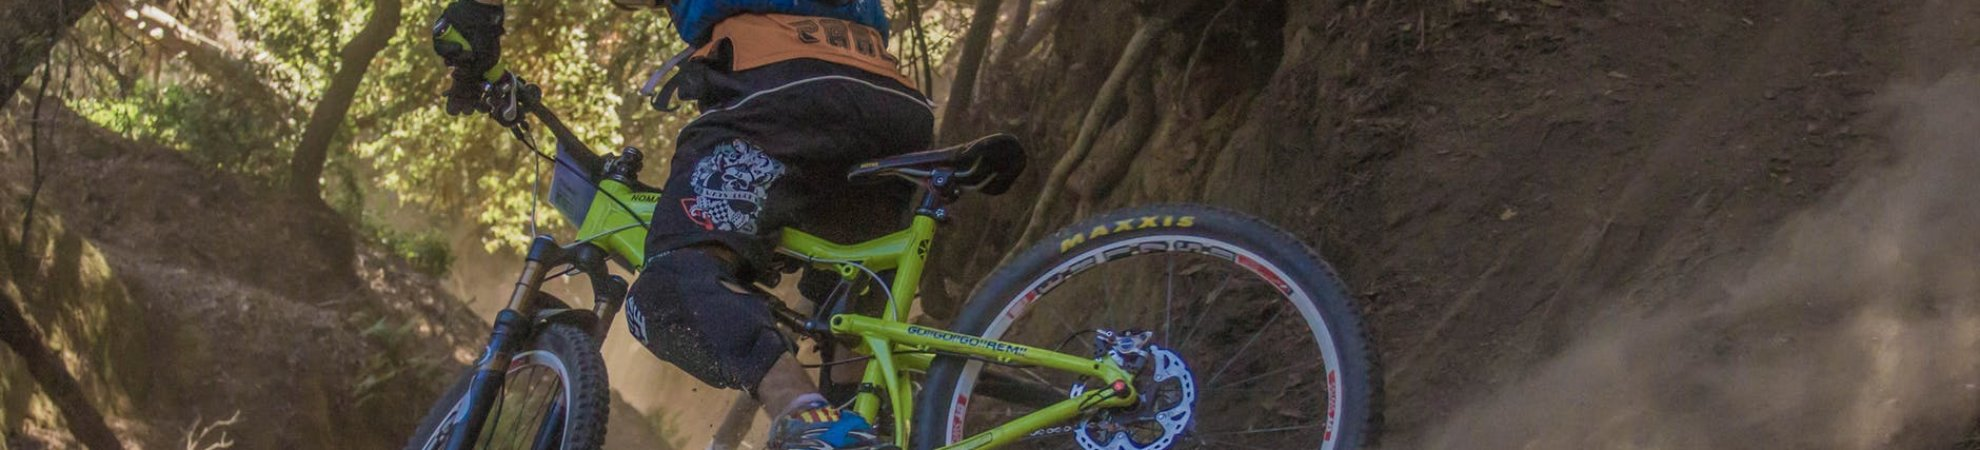 best mountain biking kit